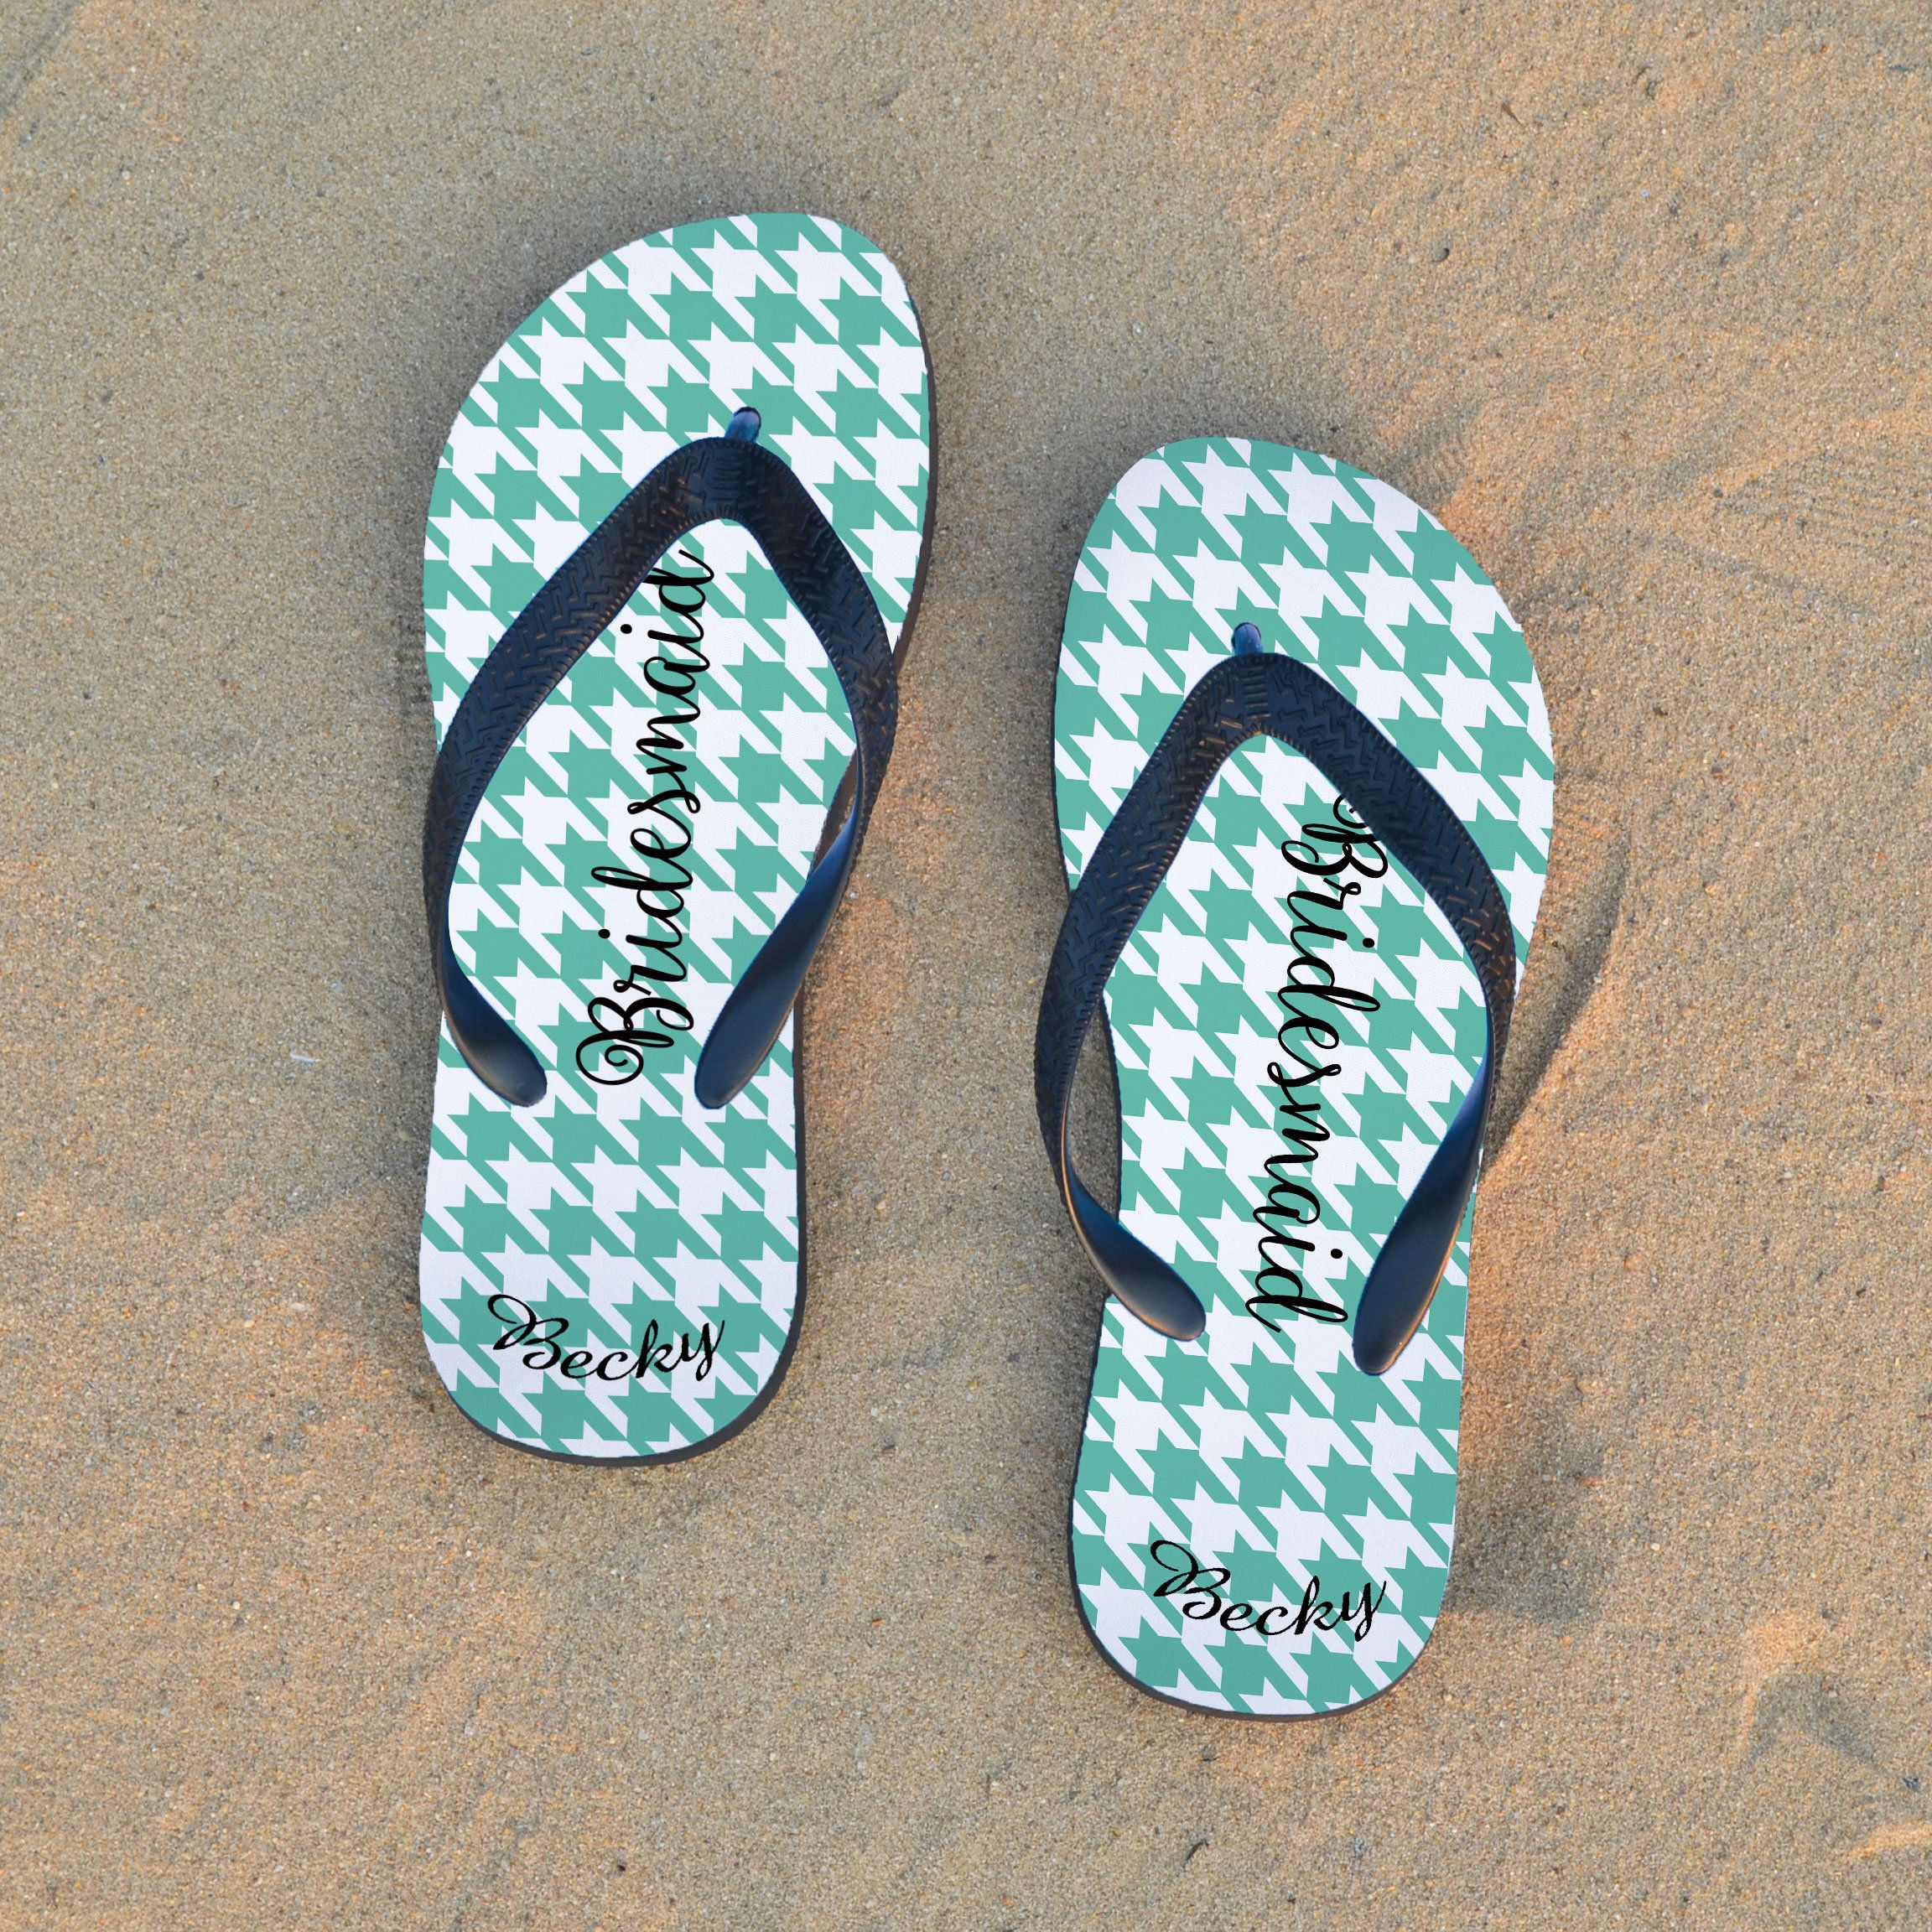 Personalized Flip Flops For Wedding Guests Sandals By Janecustifts On Etsy